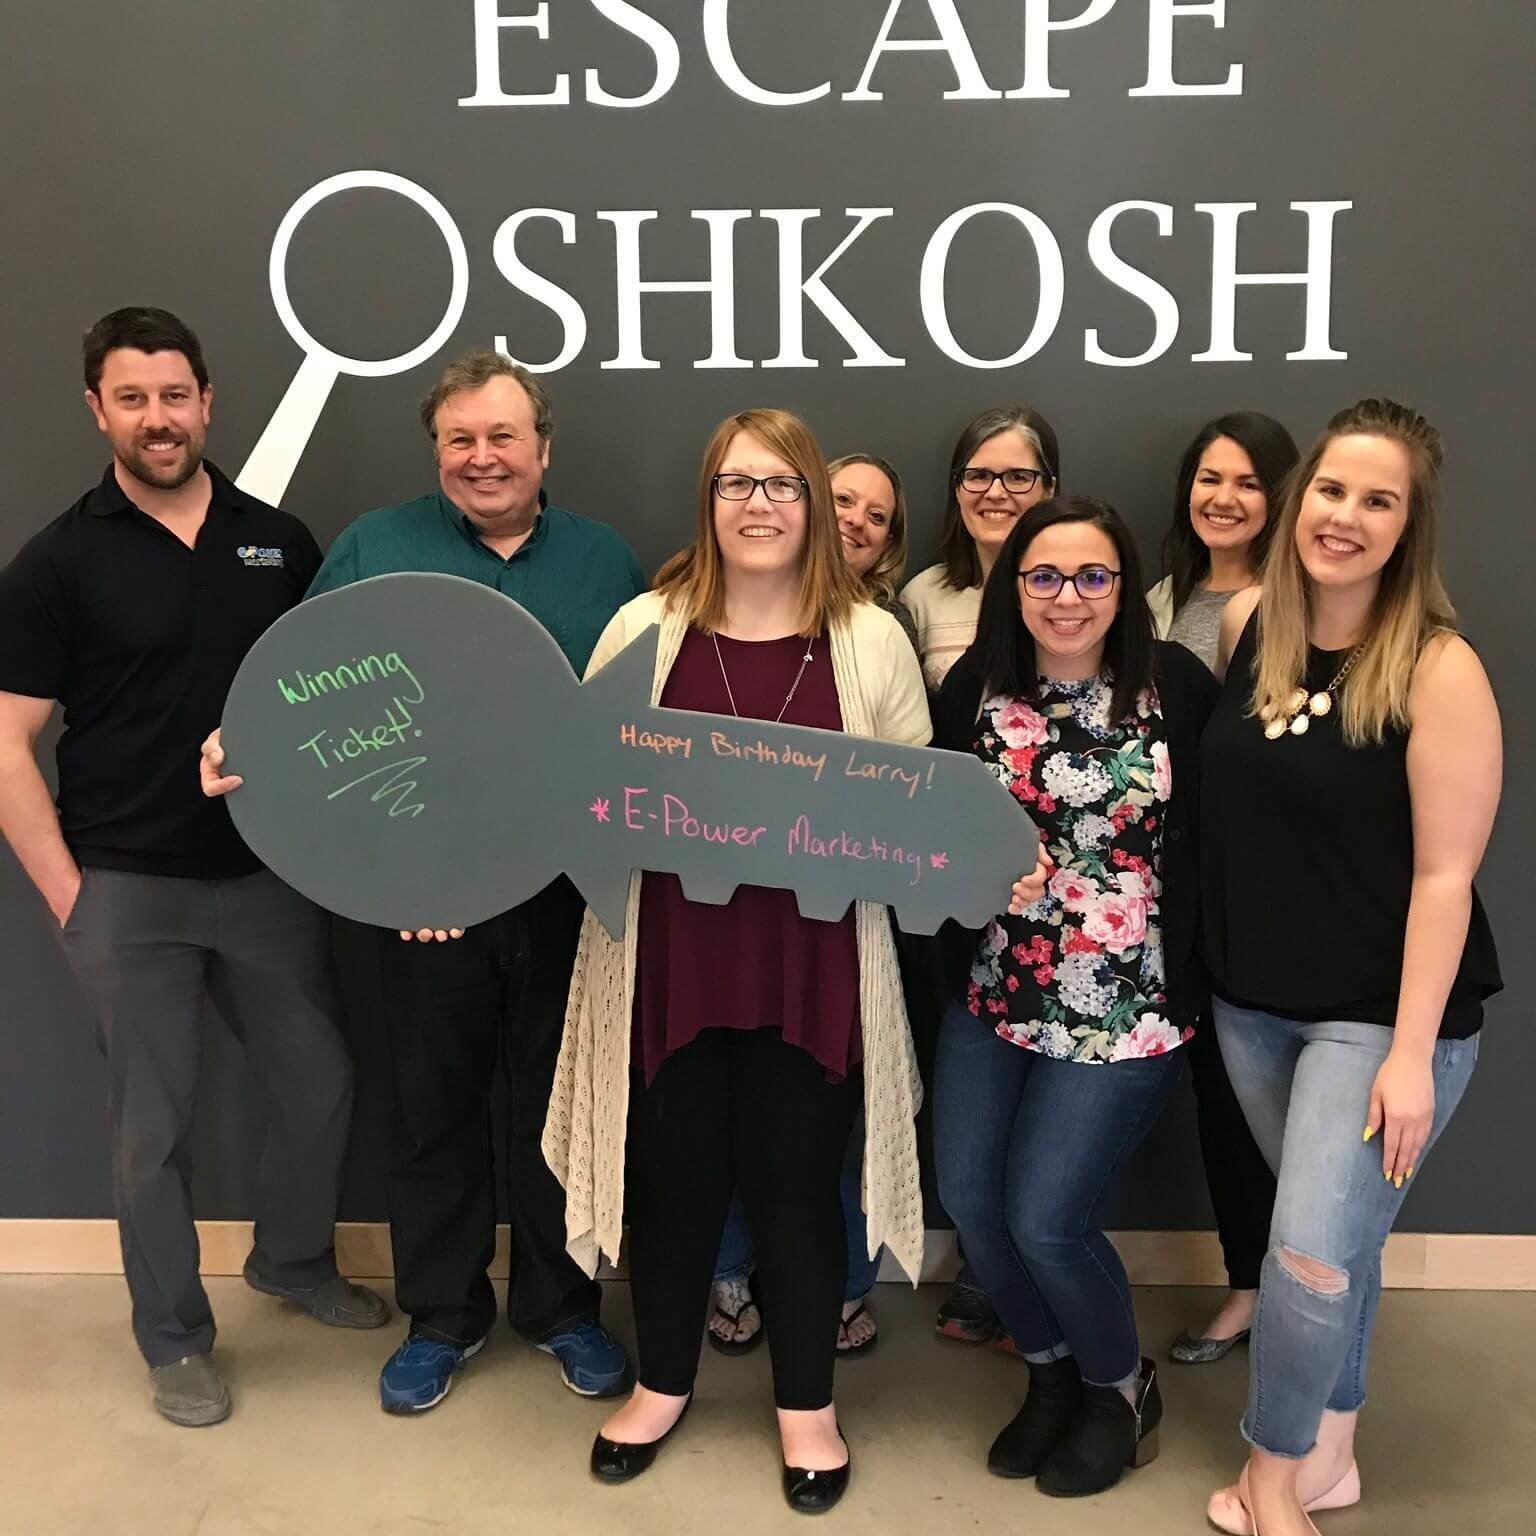 The E/Power team at Escape Oshkosh during a team day!